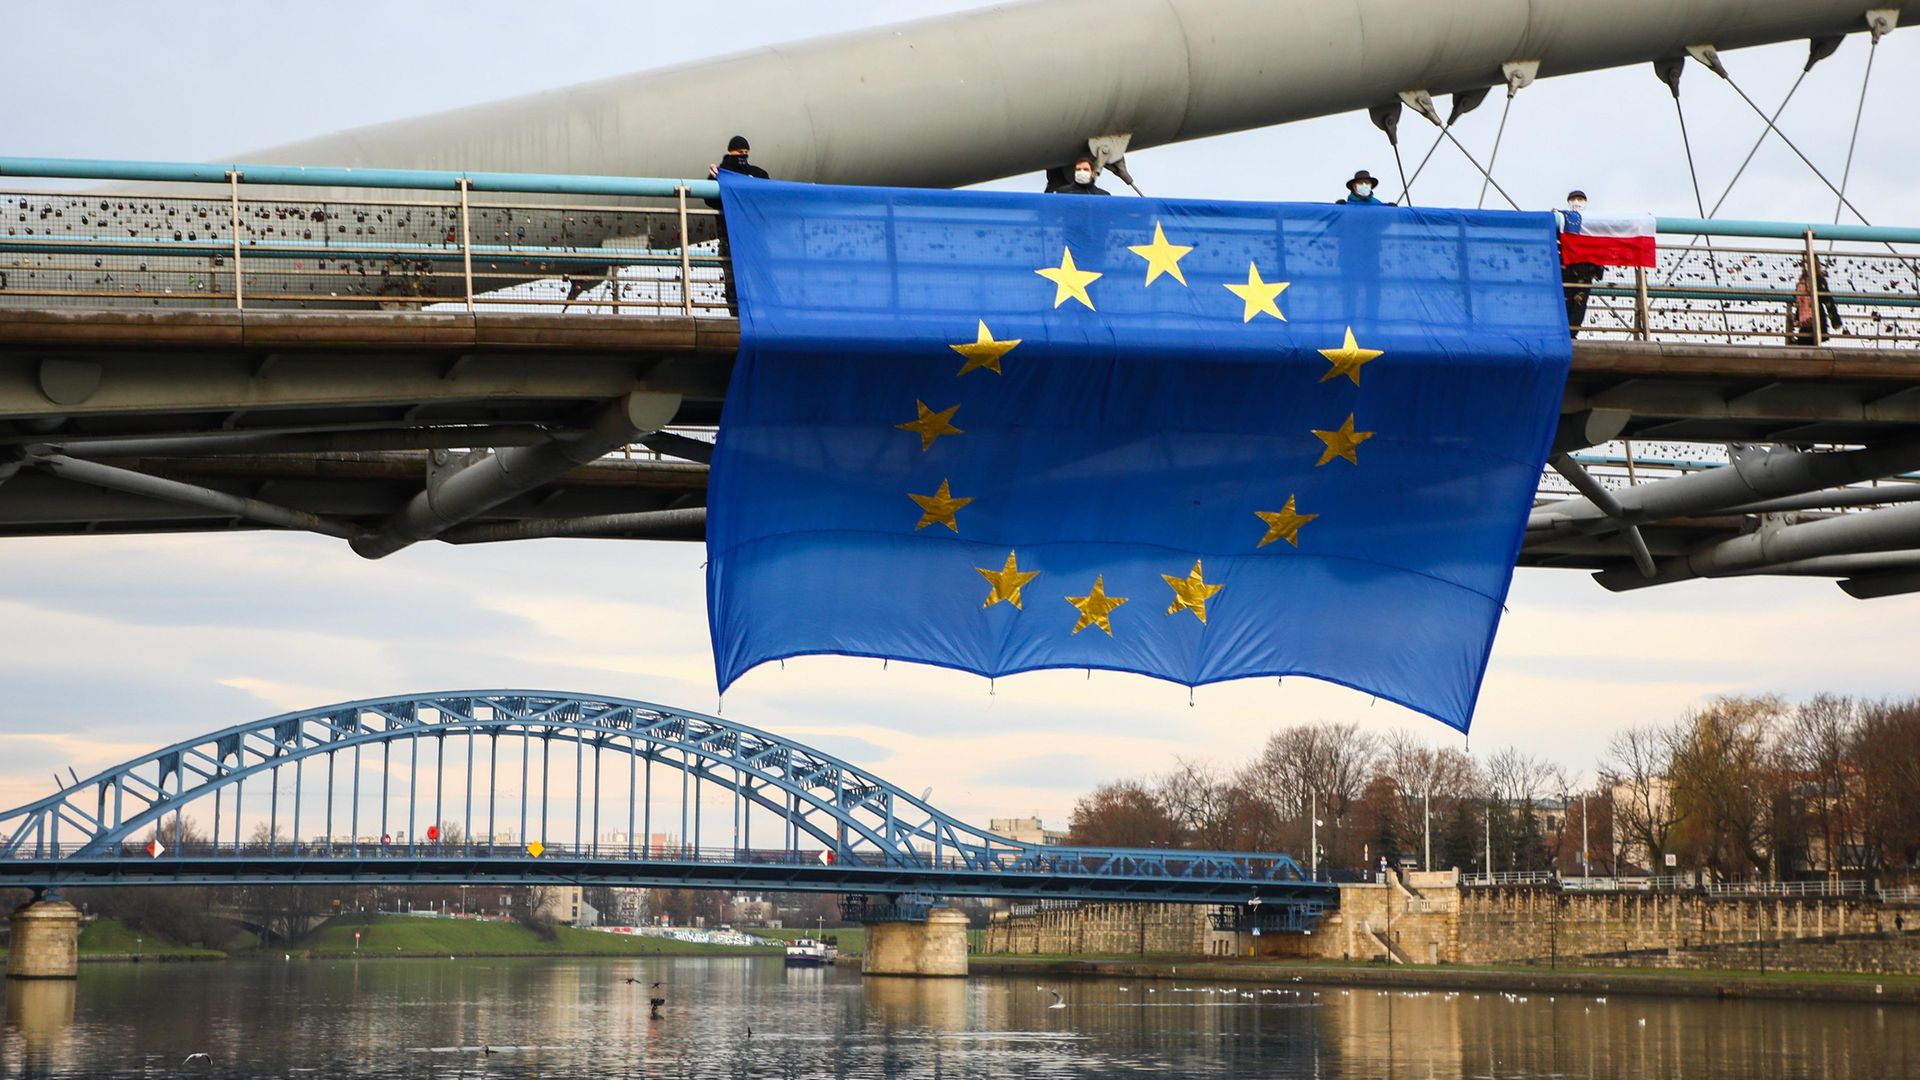 A huge EU flag hung on Father Bernatek footbridge over Vistula River, as part of an anti-government protest organised by the members of the Committee for the Defence of Democracy (KOD) in Krakow, Poland - Credit: NurPhoto via Getty Images